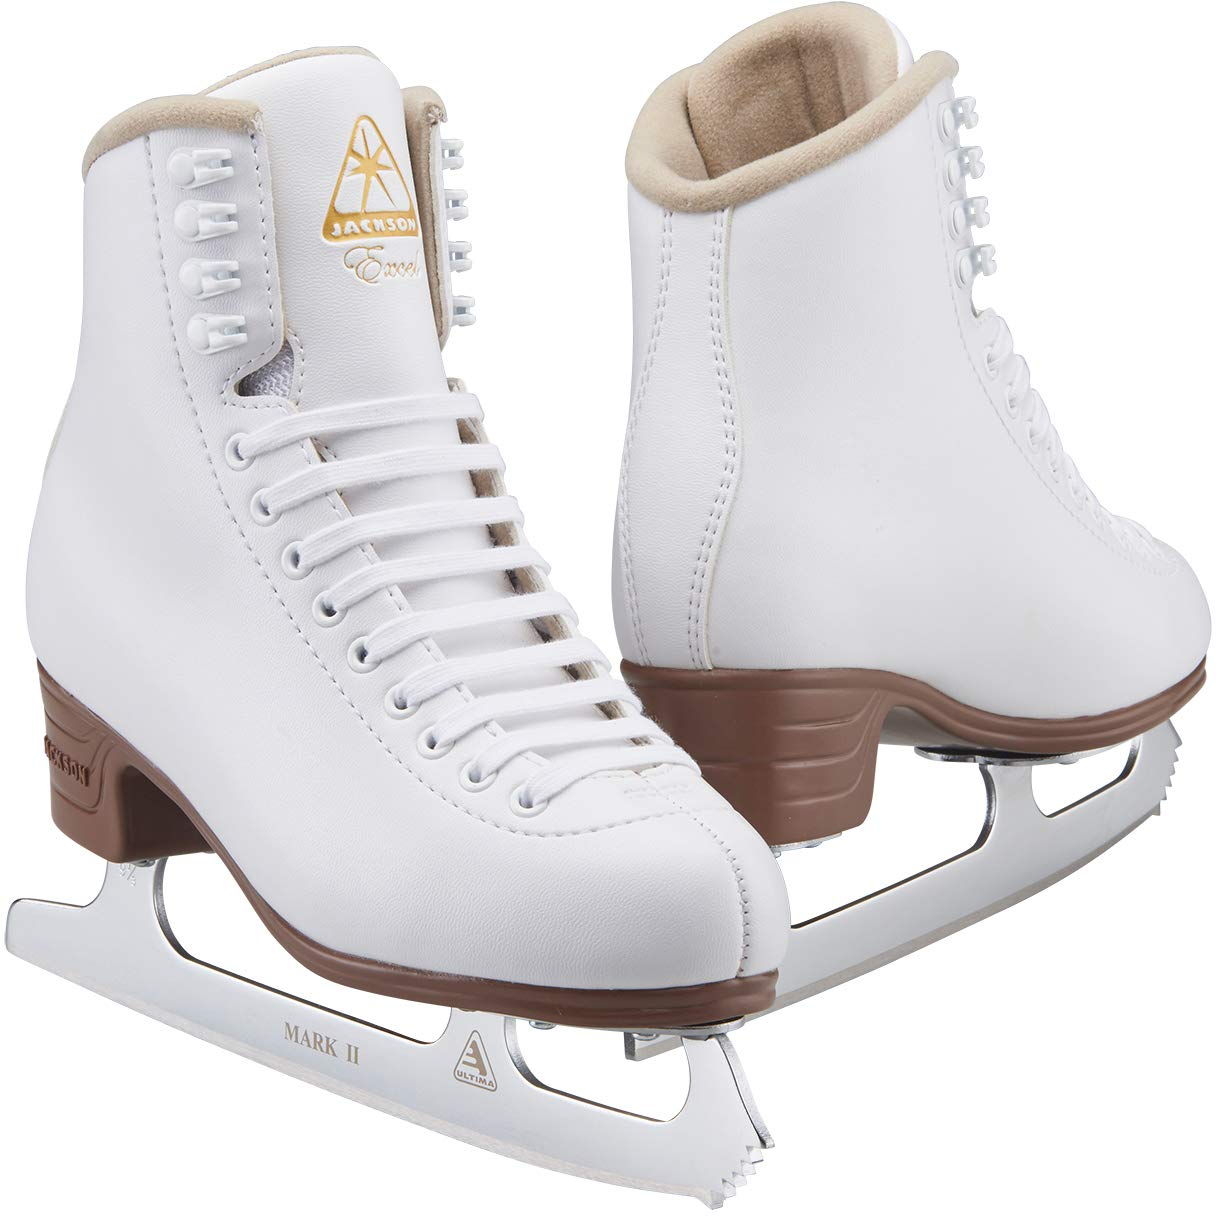 Jackson Ultima Excel Series JS1290 / JS1291 / JS1294 White, Women's and  Girls Figure Ice Skates : Amazon.in: Toys & Games